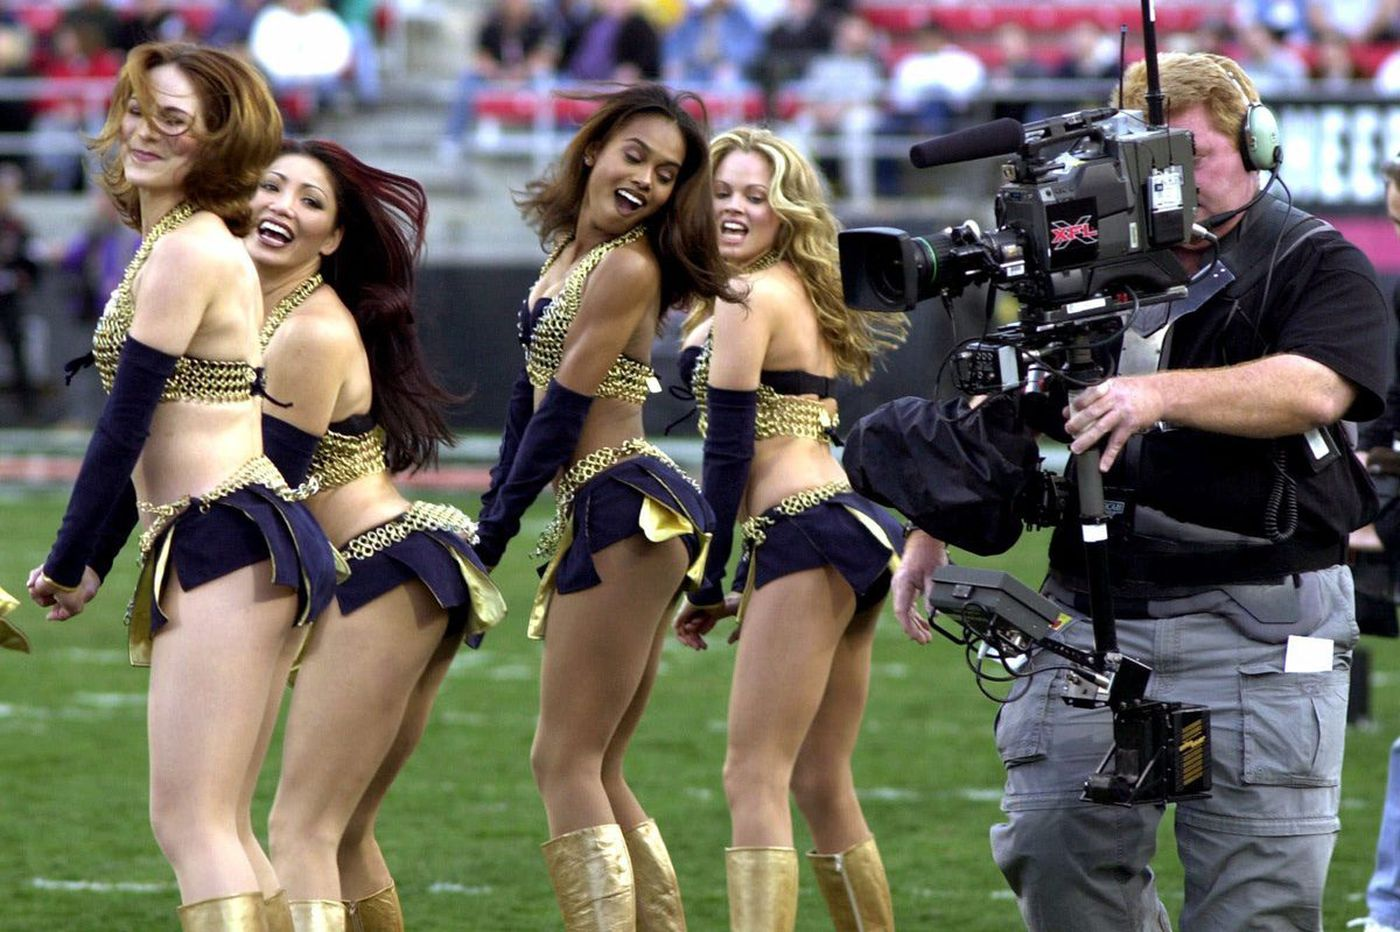 The new XFL: No cheerleaders, DUIs or kneeling during the anthem